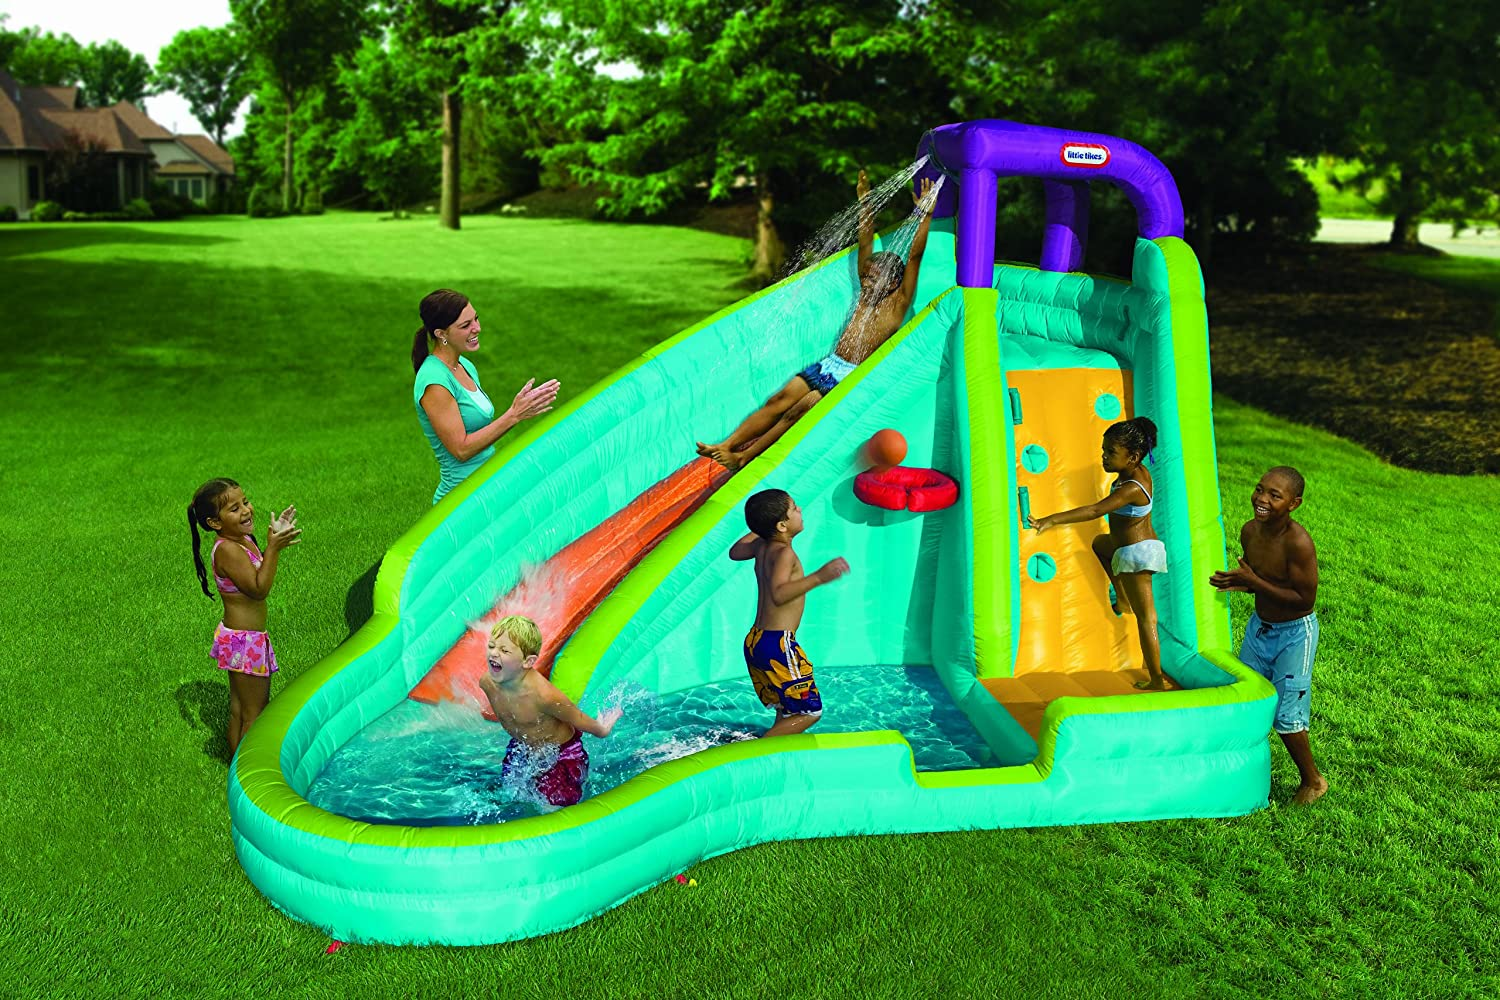 Best Backyard Slide and Waterslide Sets For Kids